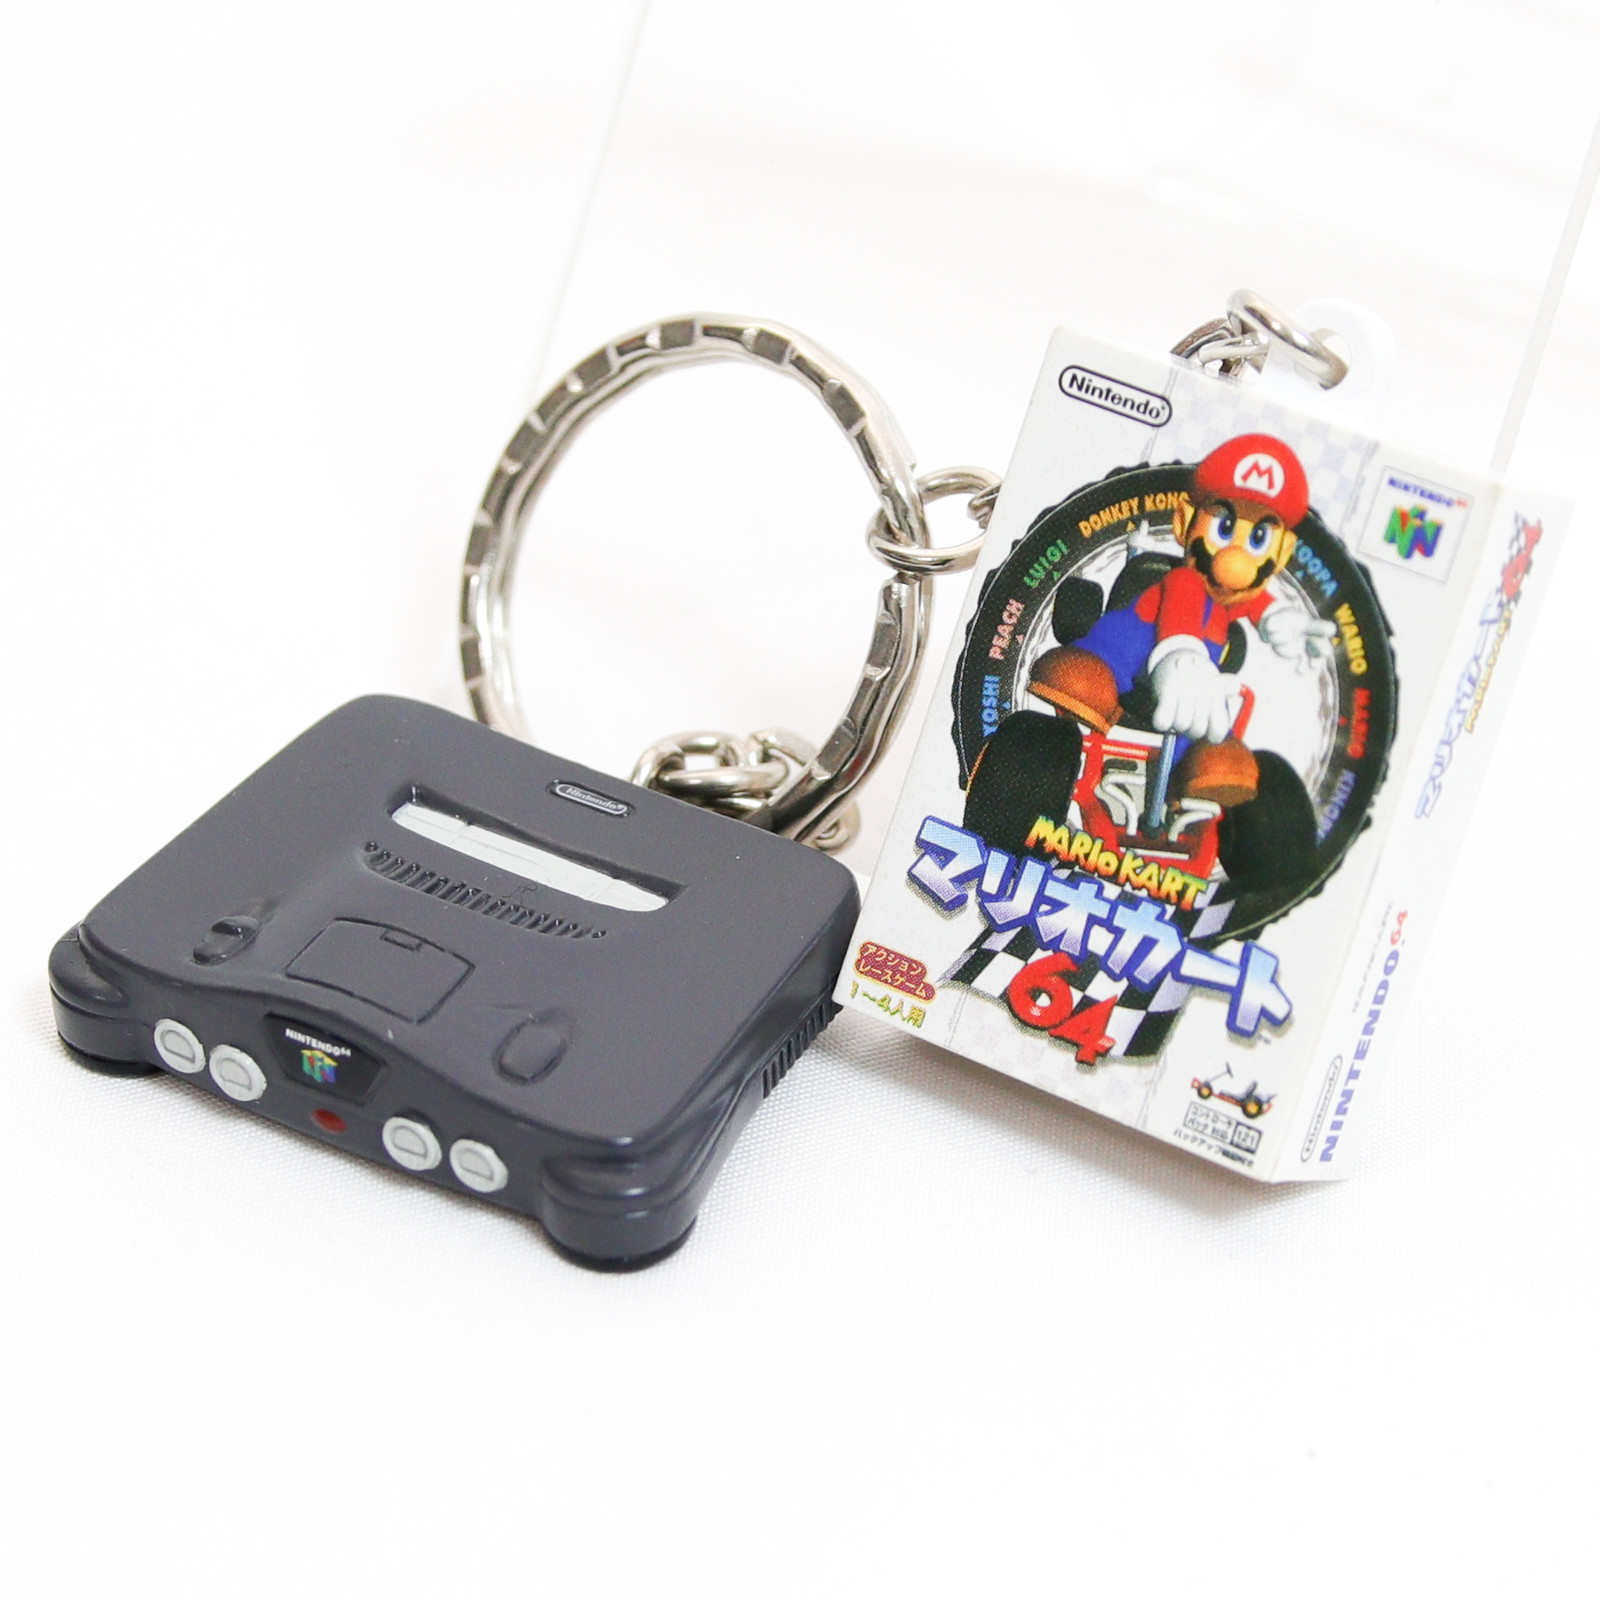 Nintendo Miniature Figure Key Chain Nintendo 64 & Mario Kart 64 JAPAN GAME